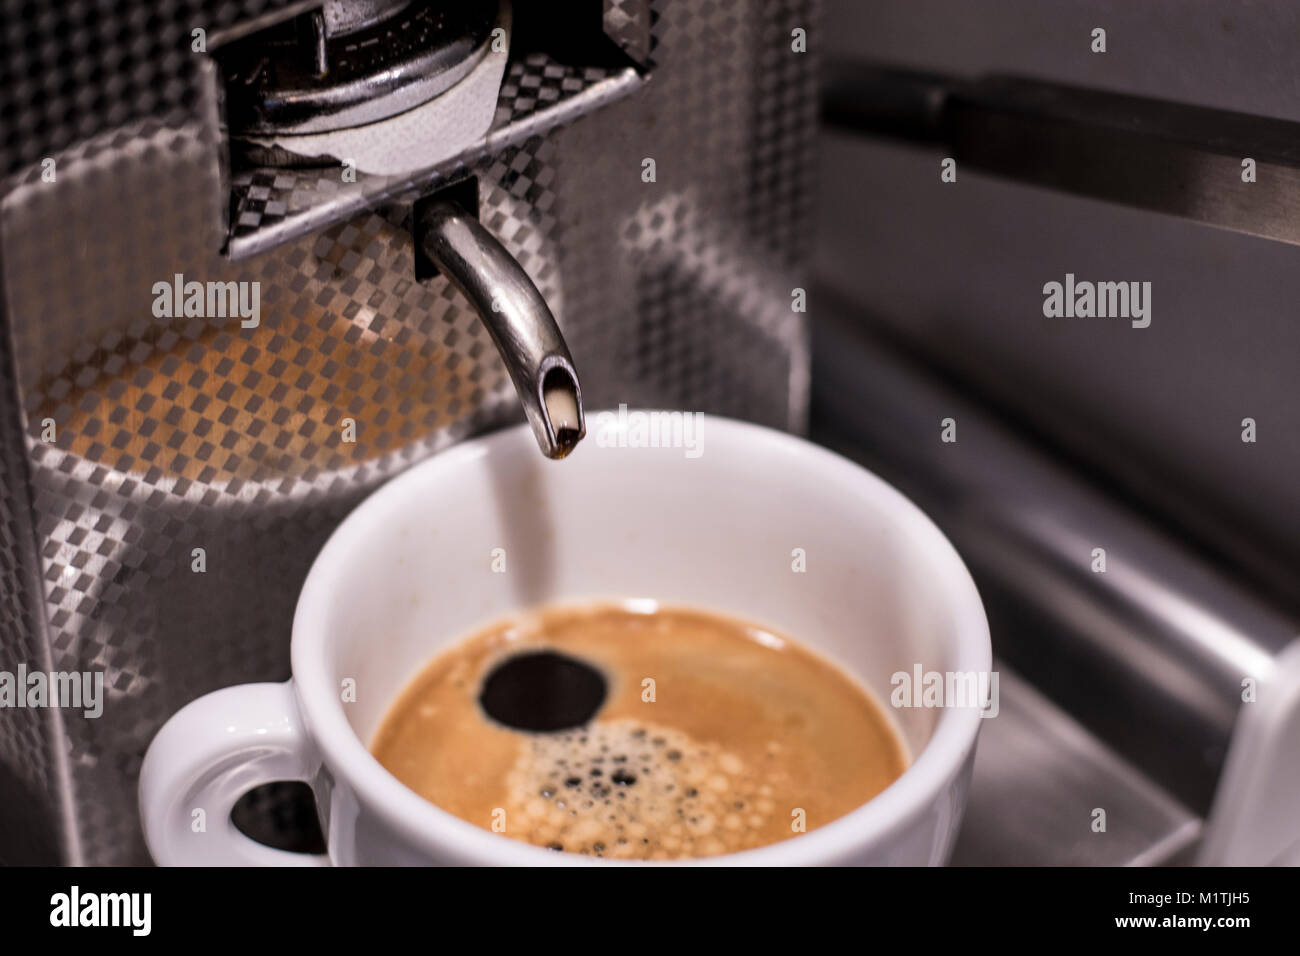 Espresso machine with cup of coffee - Stock Image